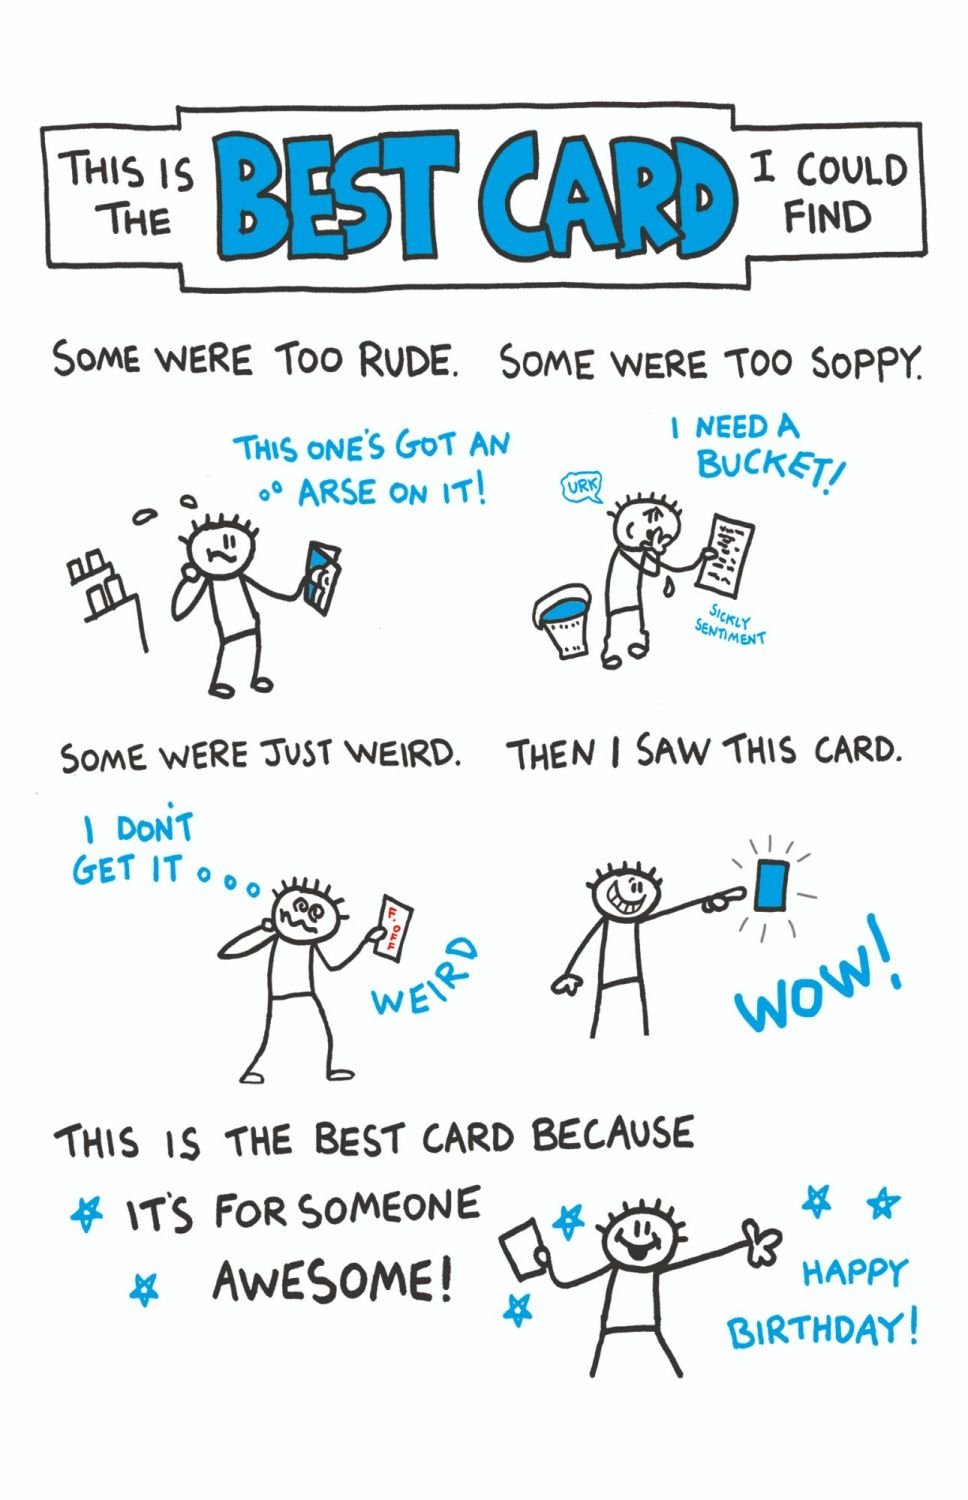 Funny Birthday Cards - BEST Card I COULD Find - FUNNY Birthday CARDS For HI